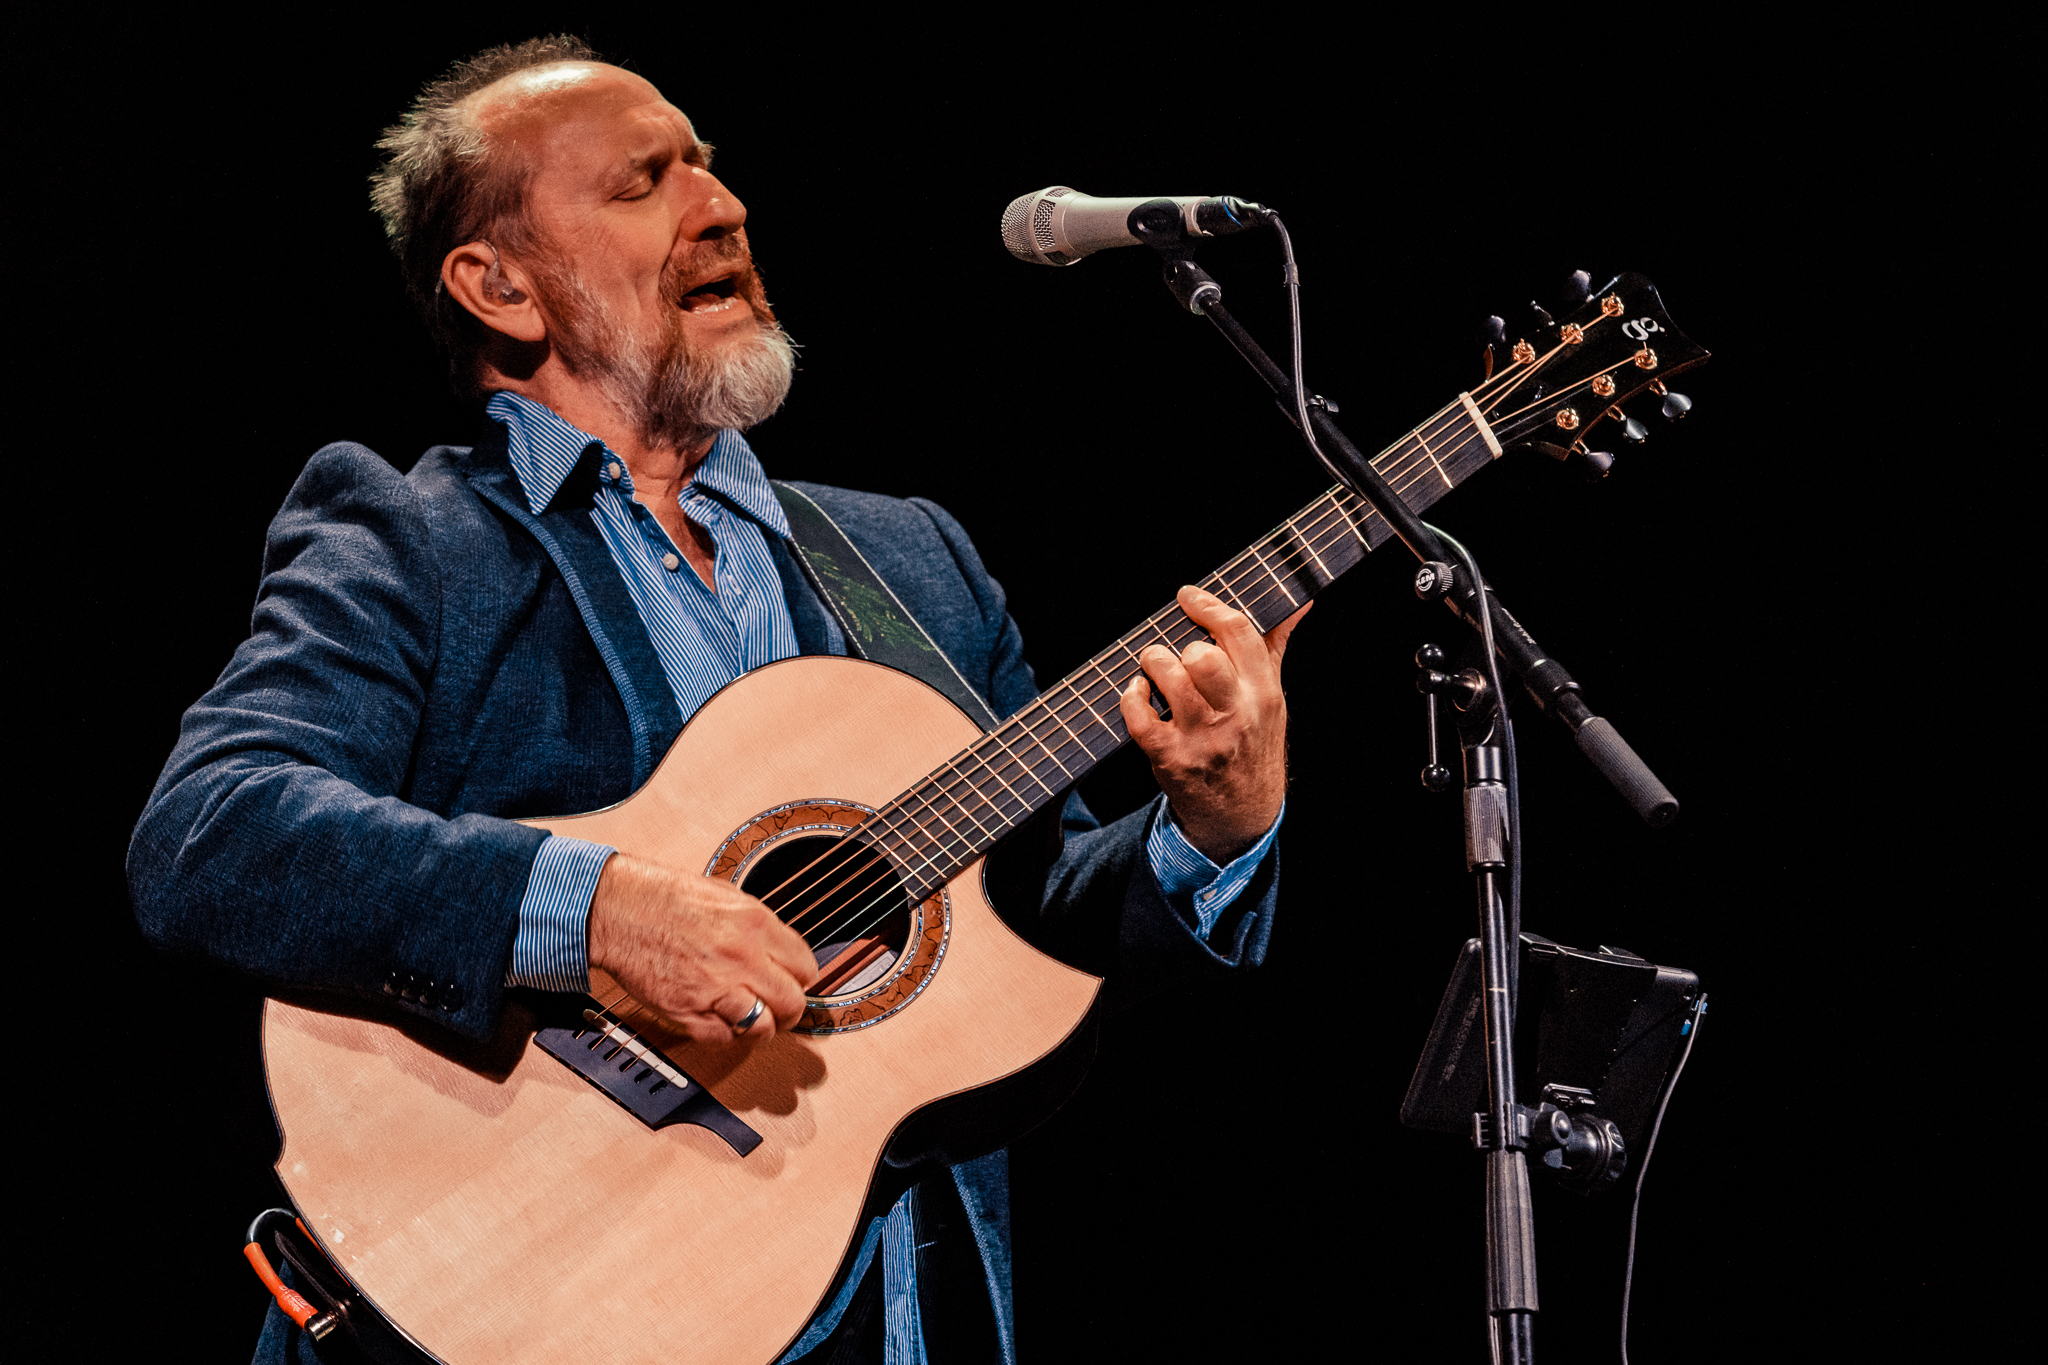 Colin Hay performing at the Lincoln Theatre in Washington, DC on October 21st, 2017 (photo by Matt Condon /  @arcane93 )